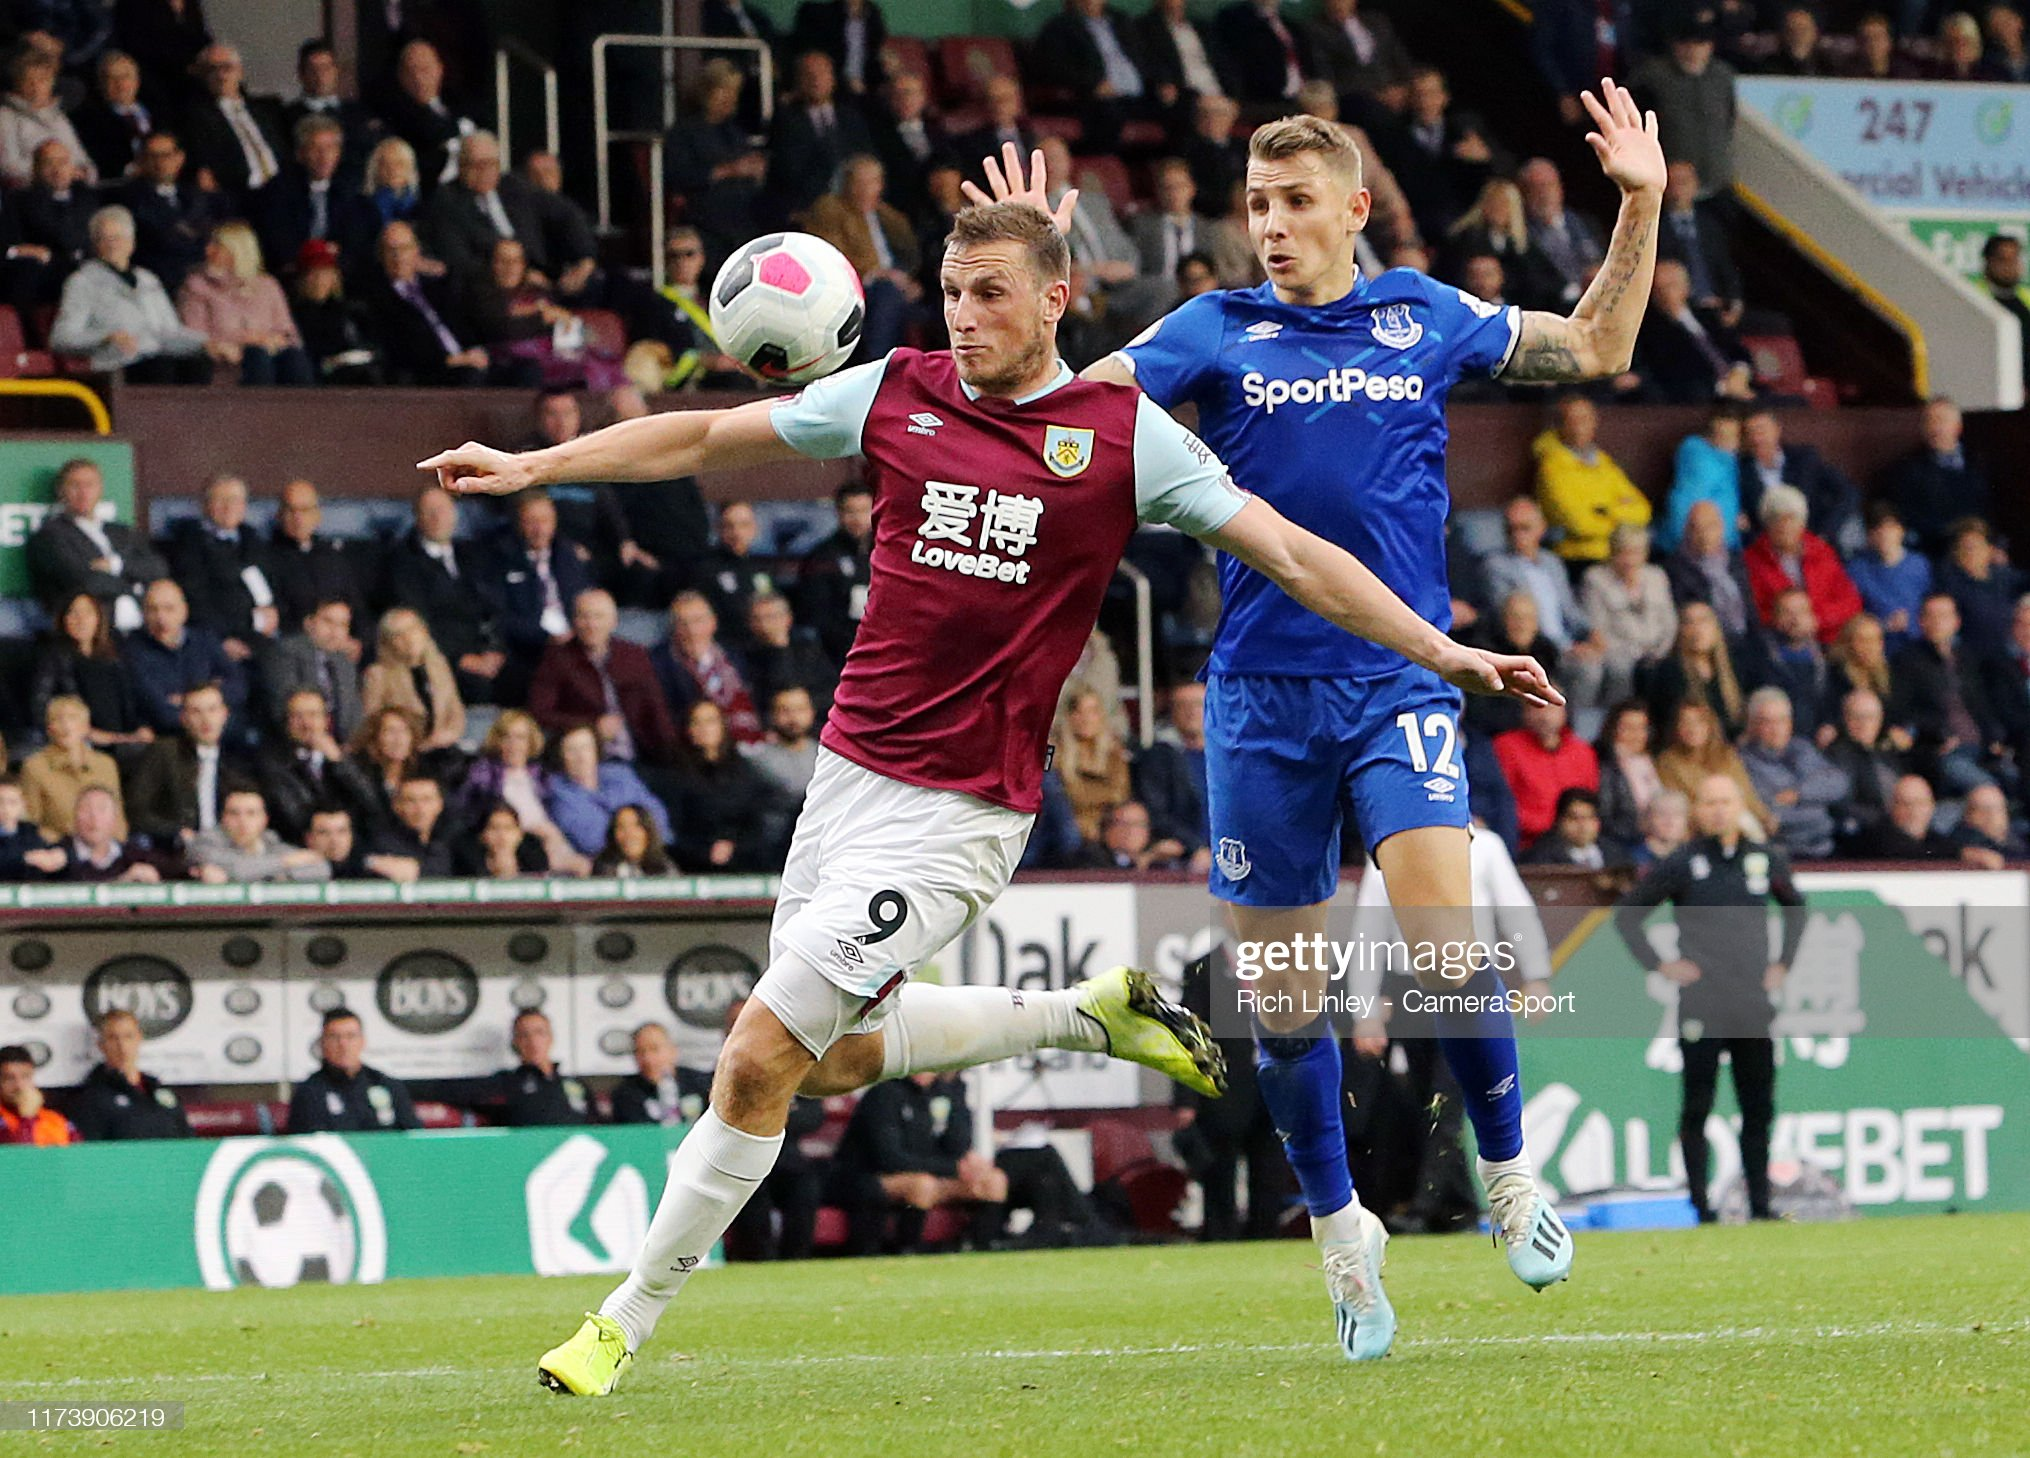 Everton v Burnley preview, prediction and odds